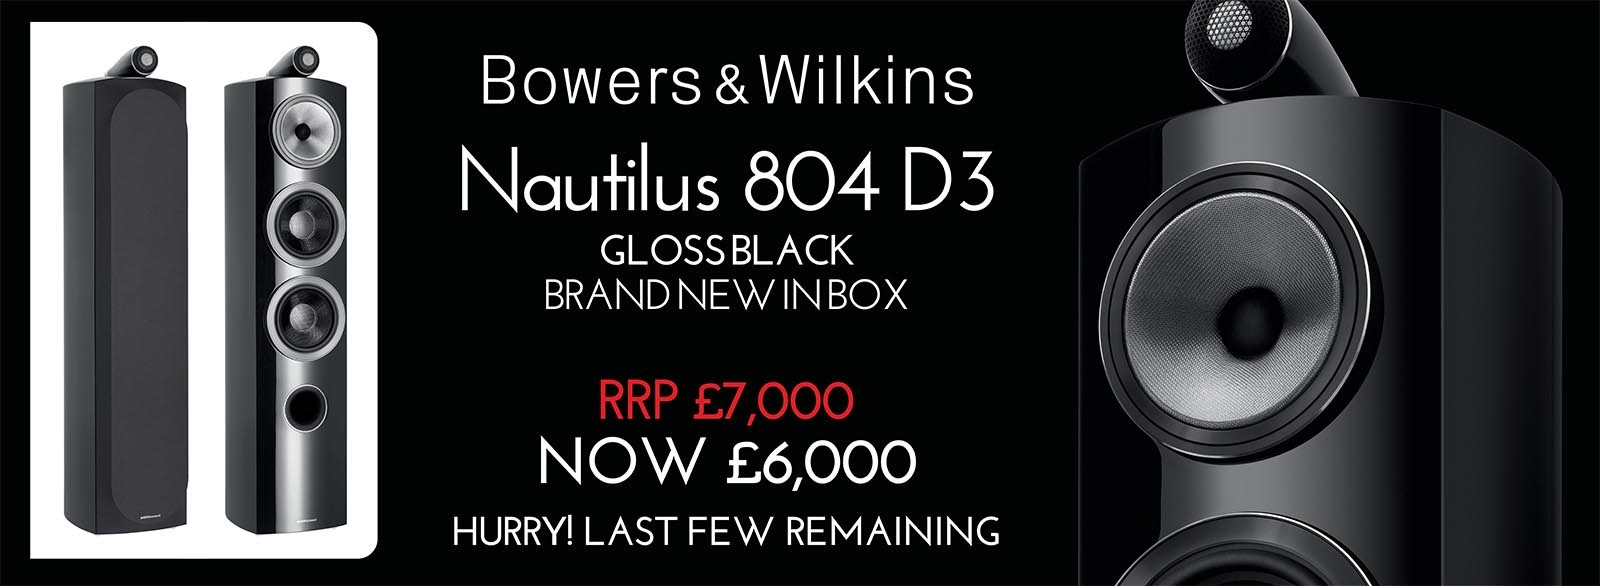 bower and wilkins 804 d3 gloss black